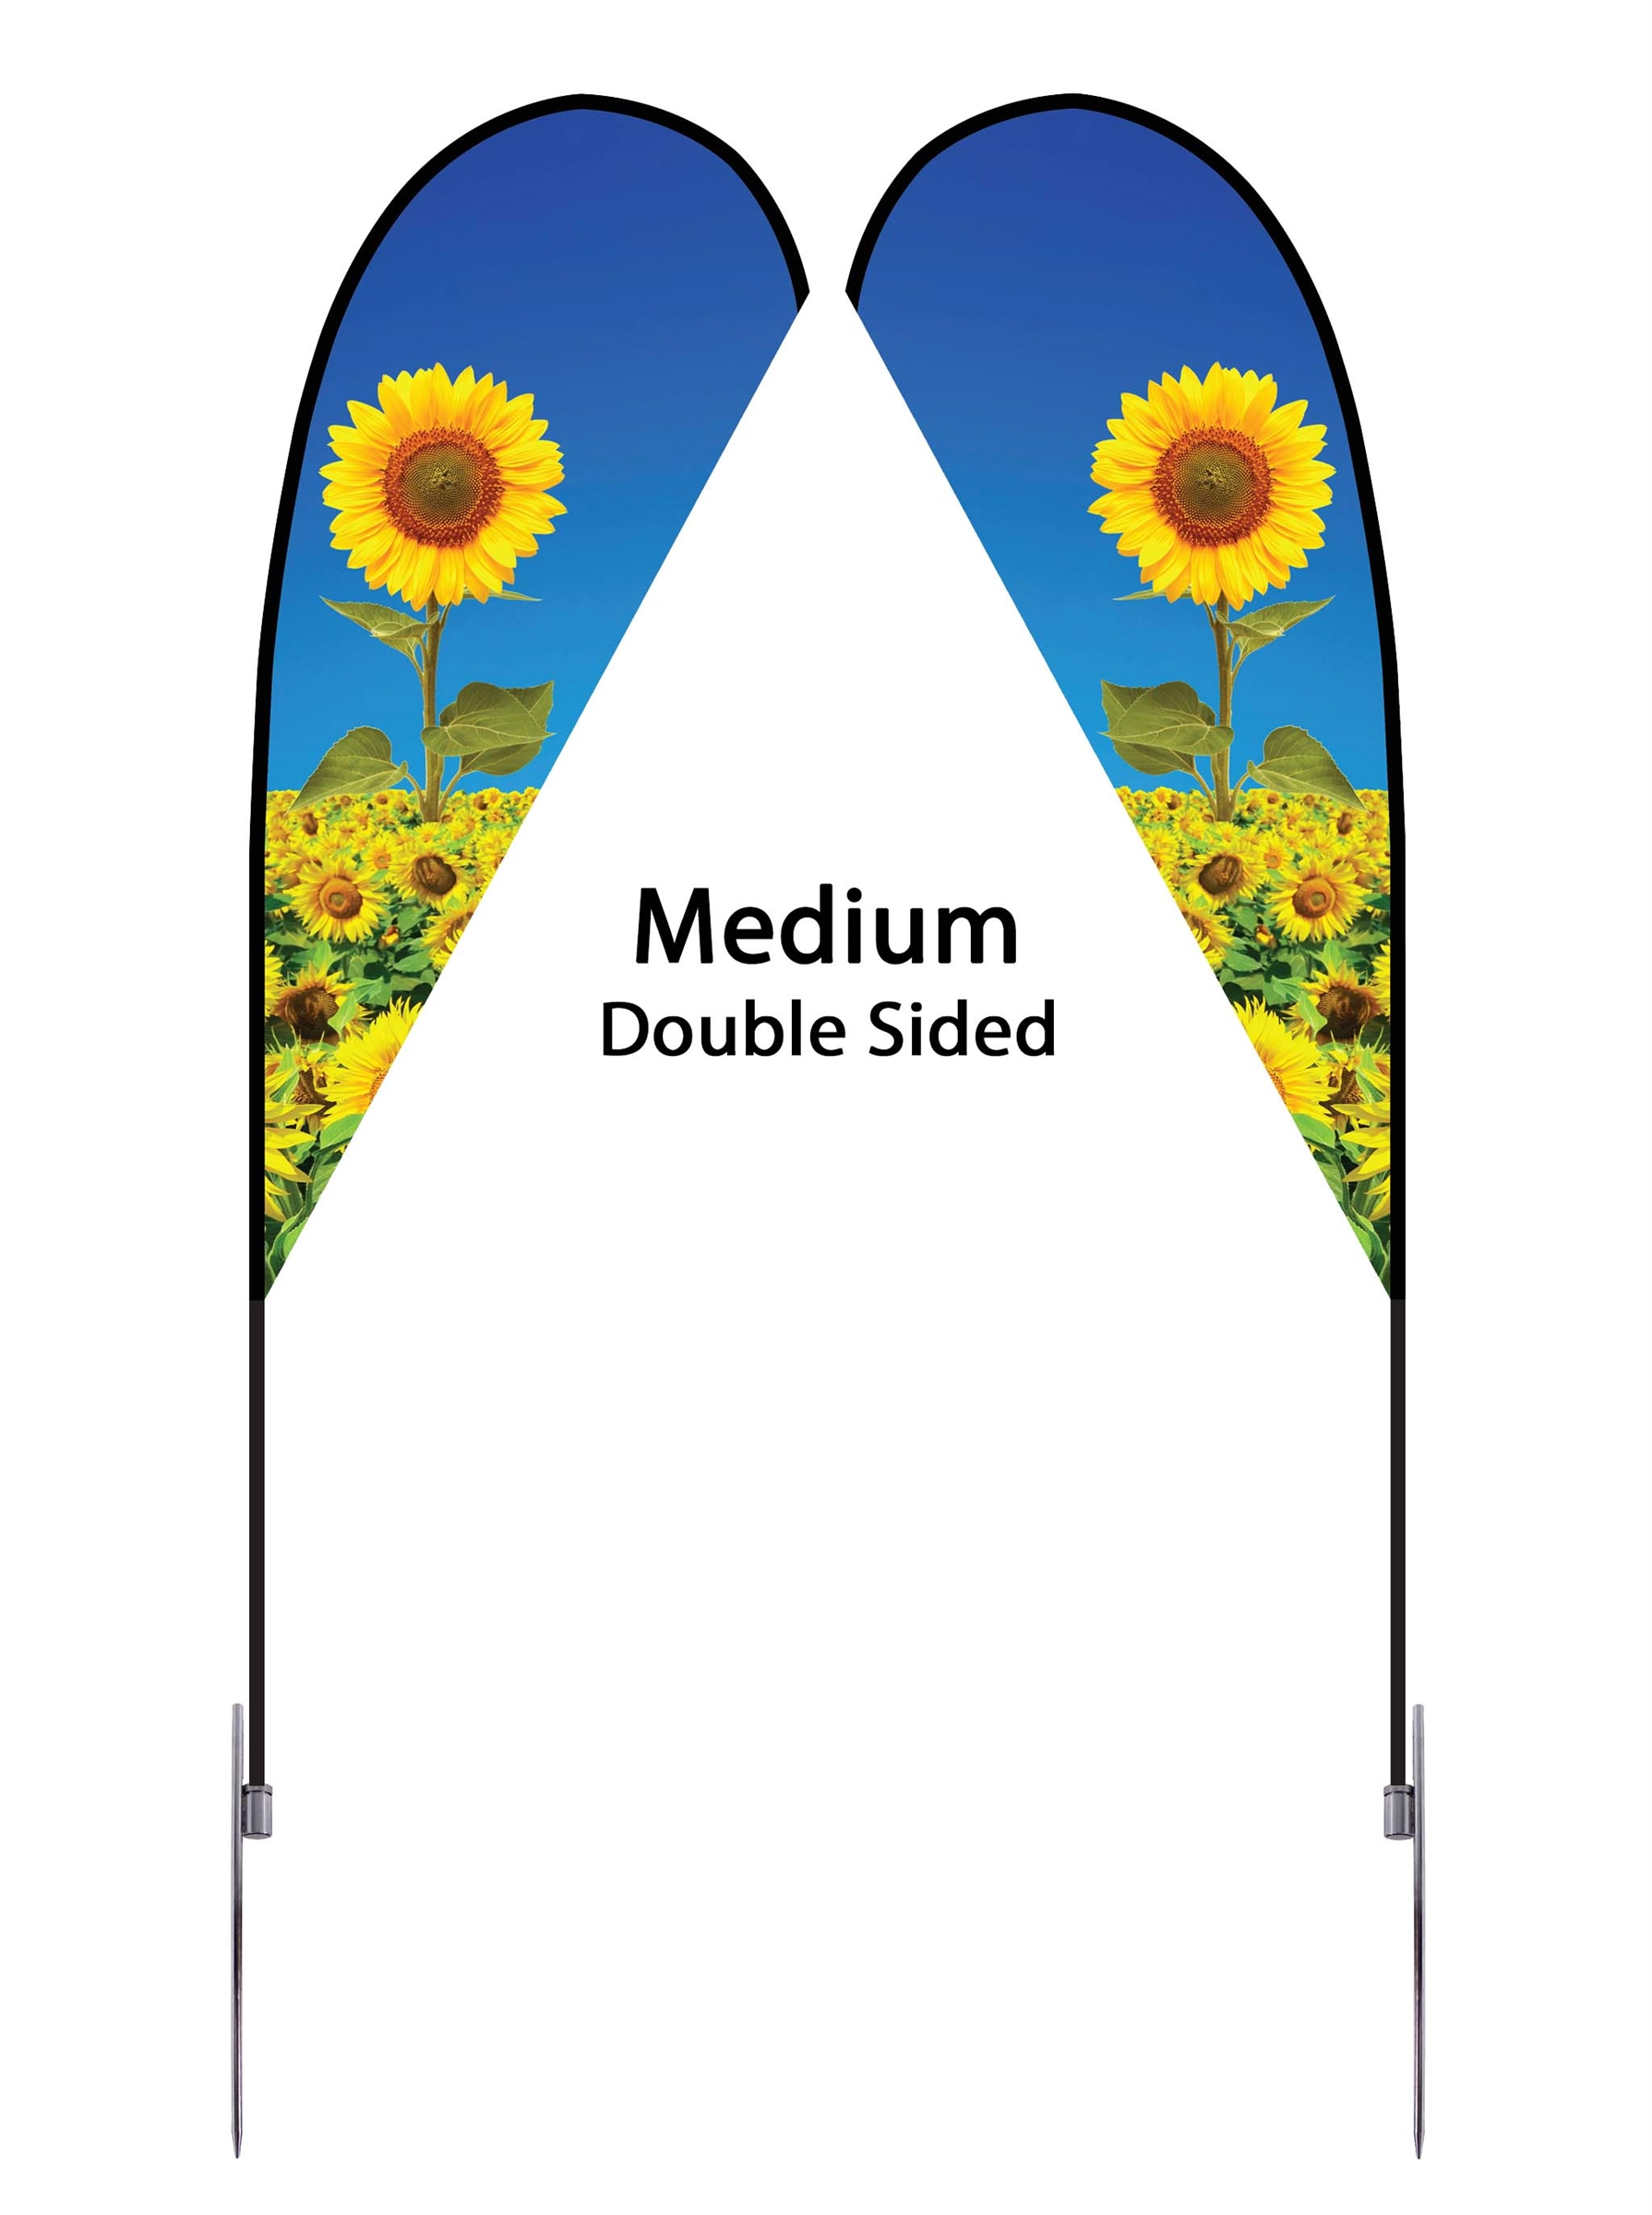 Teardrop Flag 9' Premium Double-Sided With Spike Base (Medium)